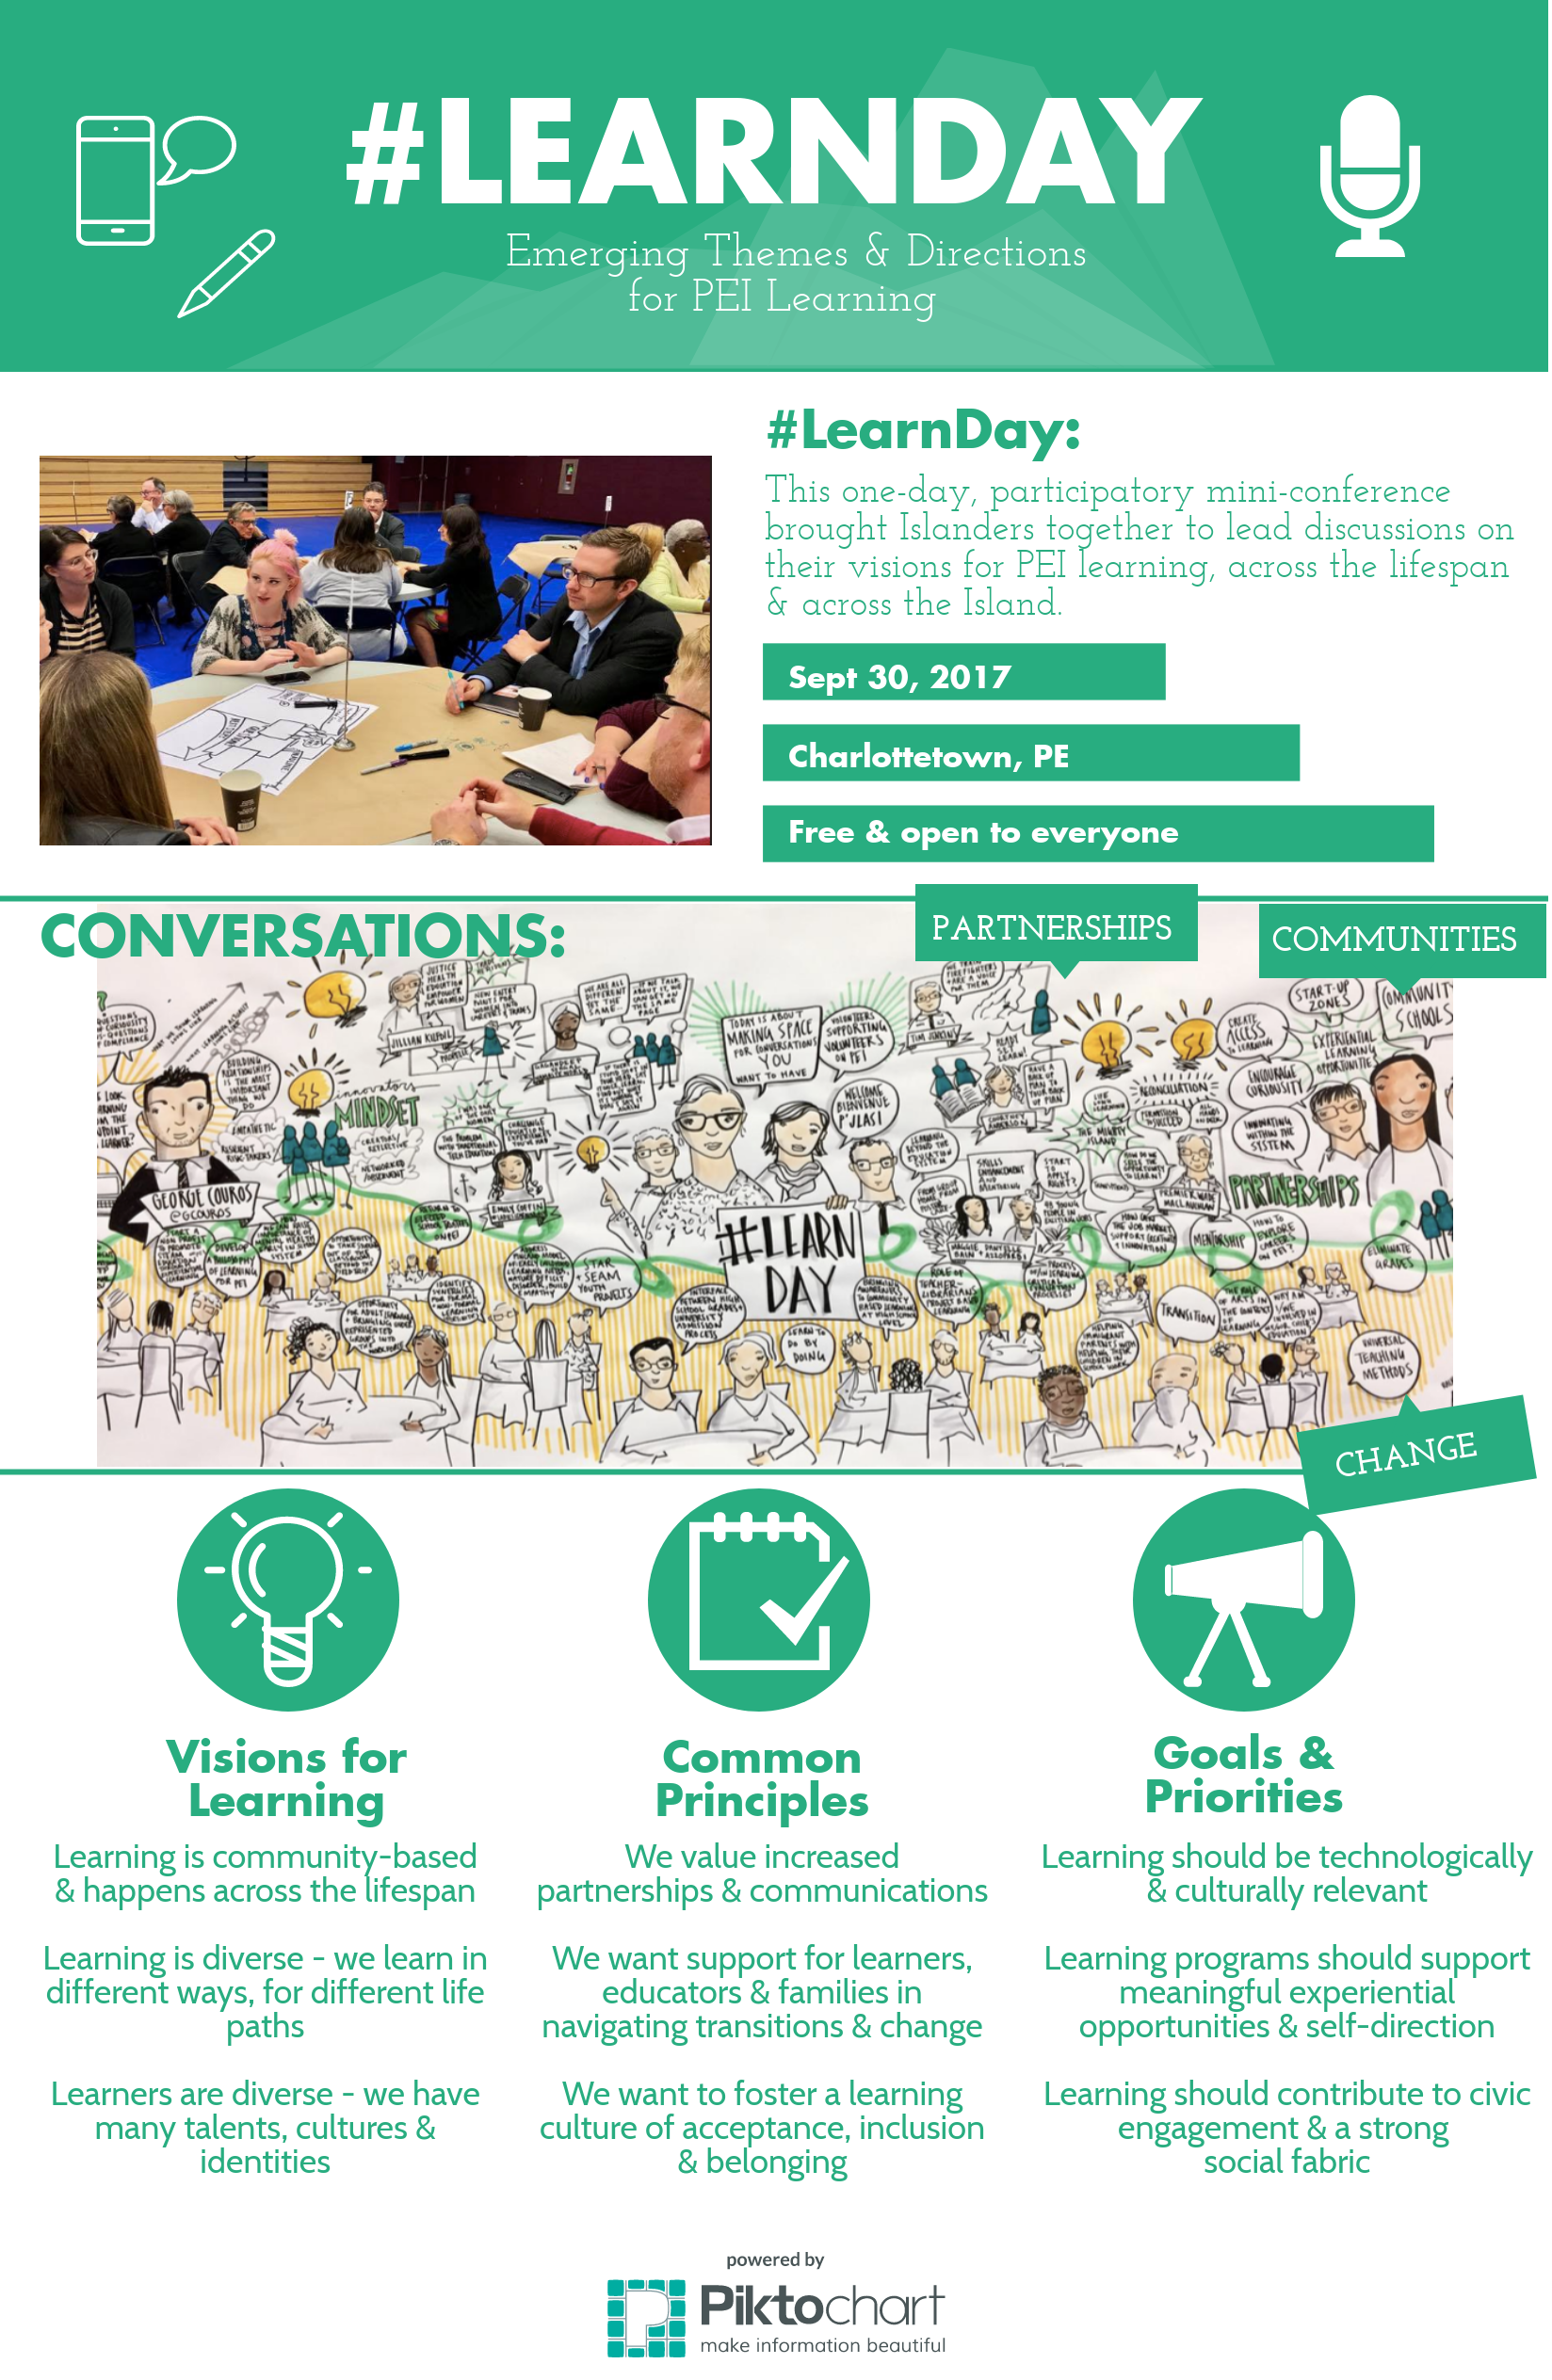 #LearnDay infographic poster